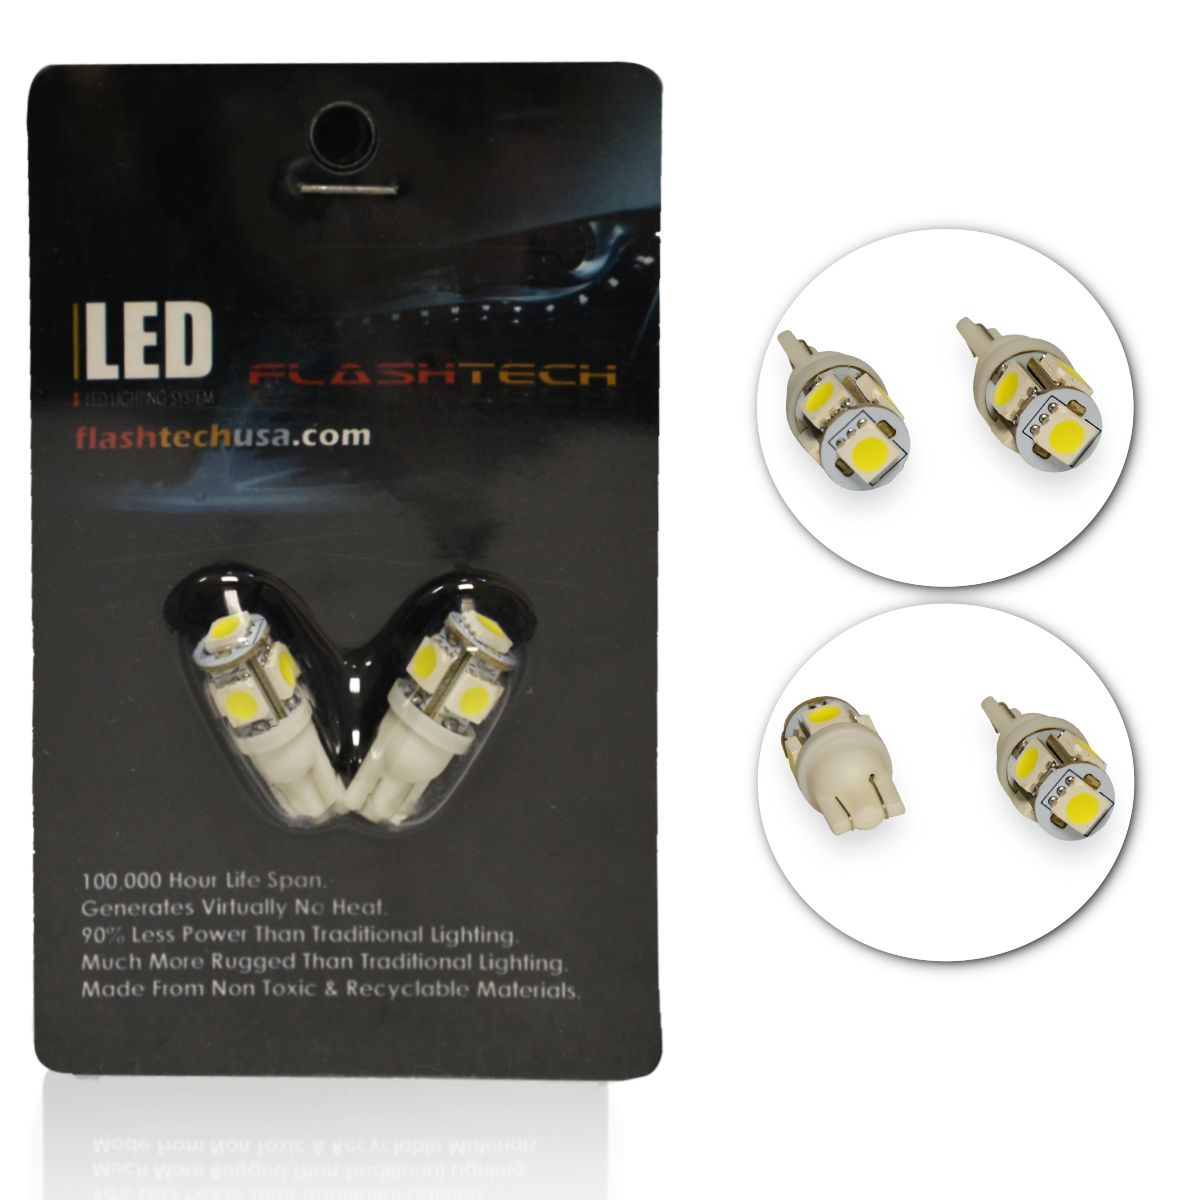 LED Exterior and Interior SMD LED Bulbs - 5 5050 LED - T10